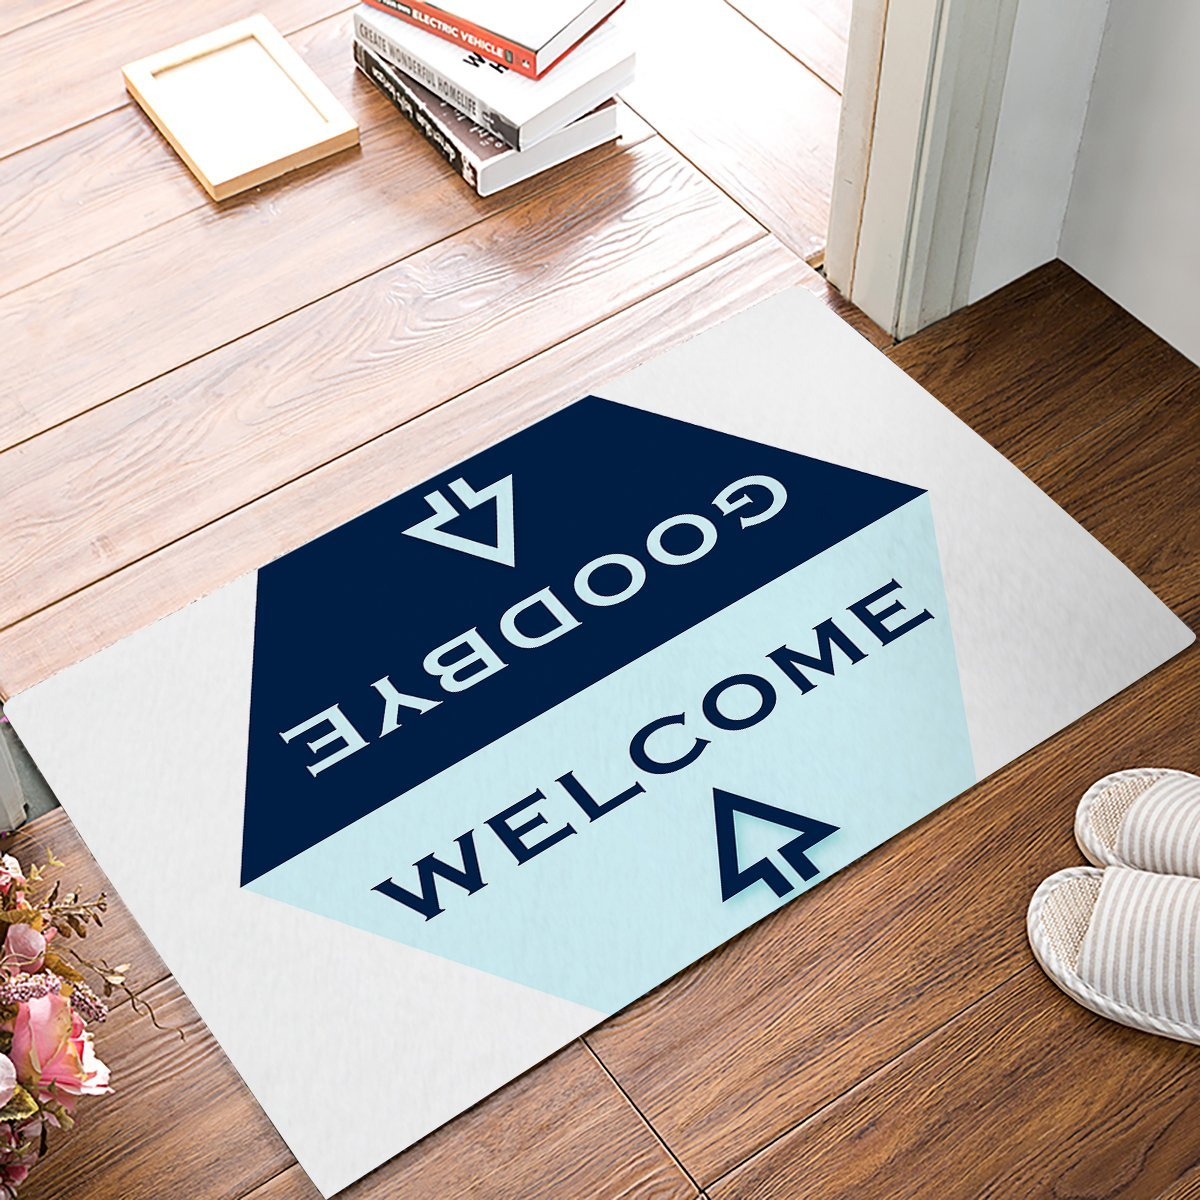 Light Blue And Navy Blue Hexagon Arrow Welcome Goodbye Greeting Door Mats Floor Entrance Rug Mat Indoor Bathroom Kitchen Doormat